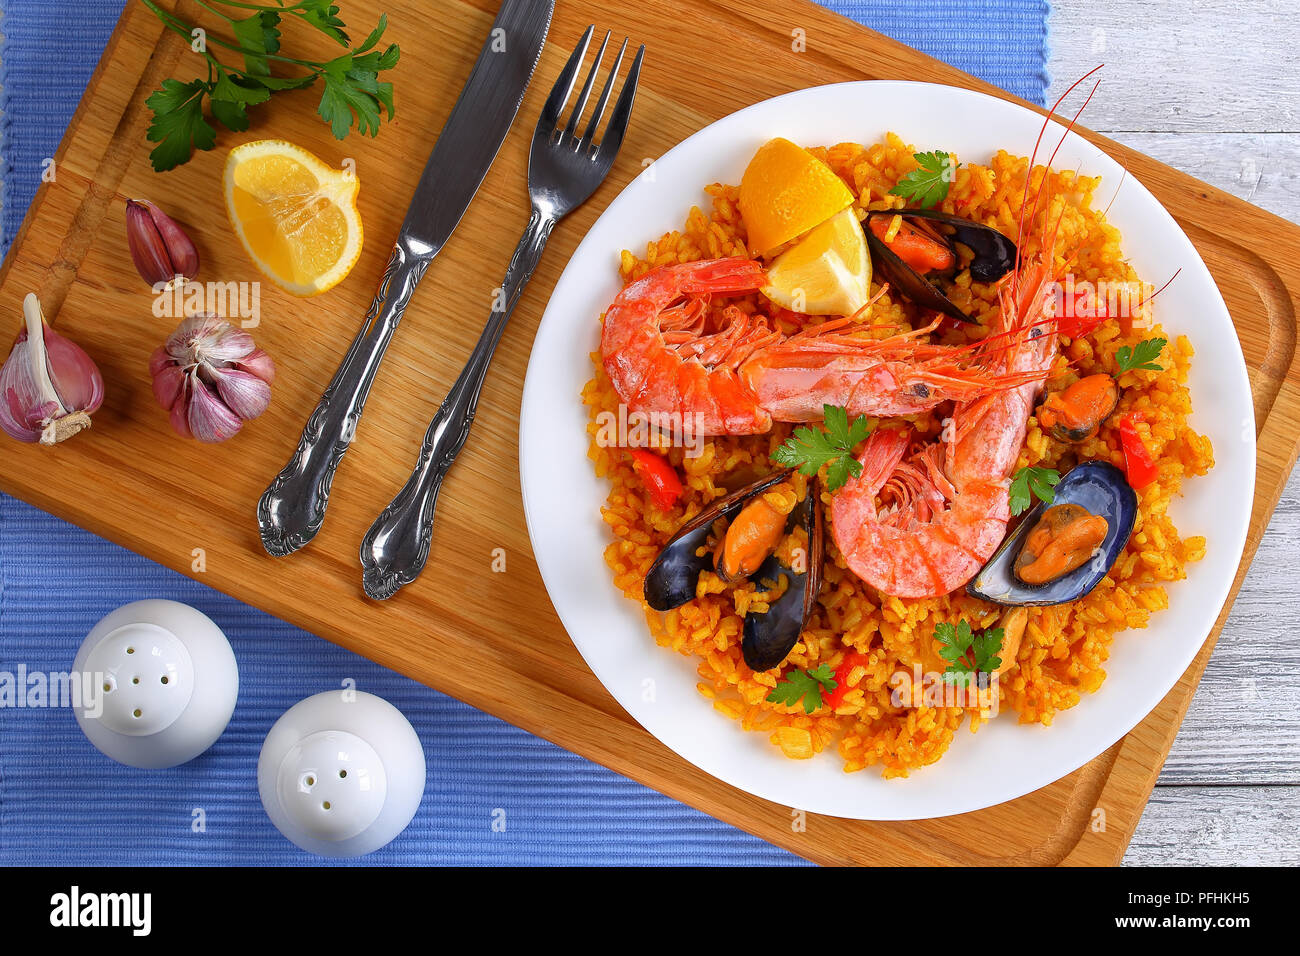 portion of gourmet seafood valencia paella with king prawns, mussels on savory creamy saffron rice with spices and lemon wedges on plate, on wooden ch - Stock Image